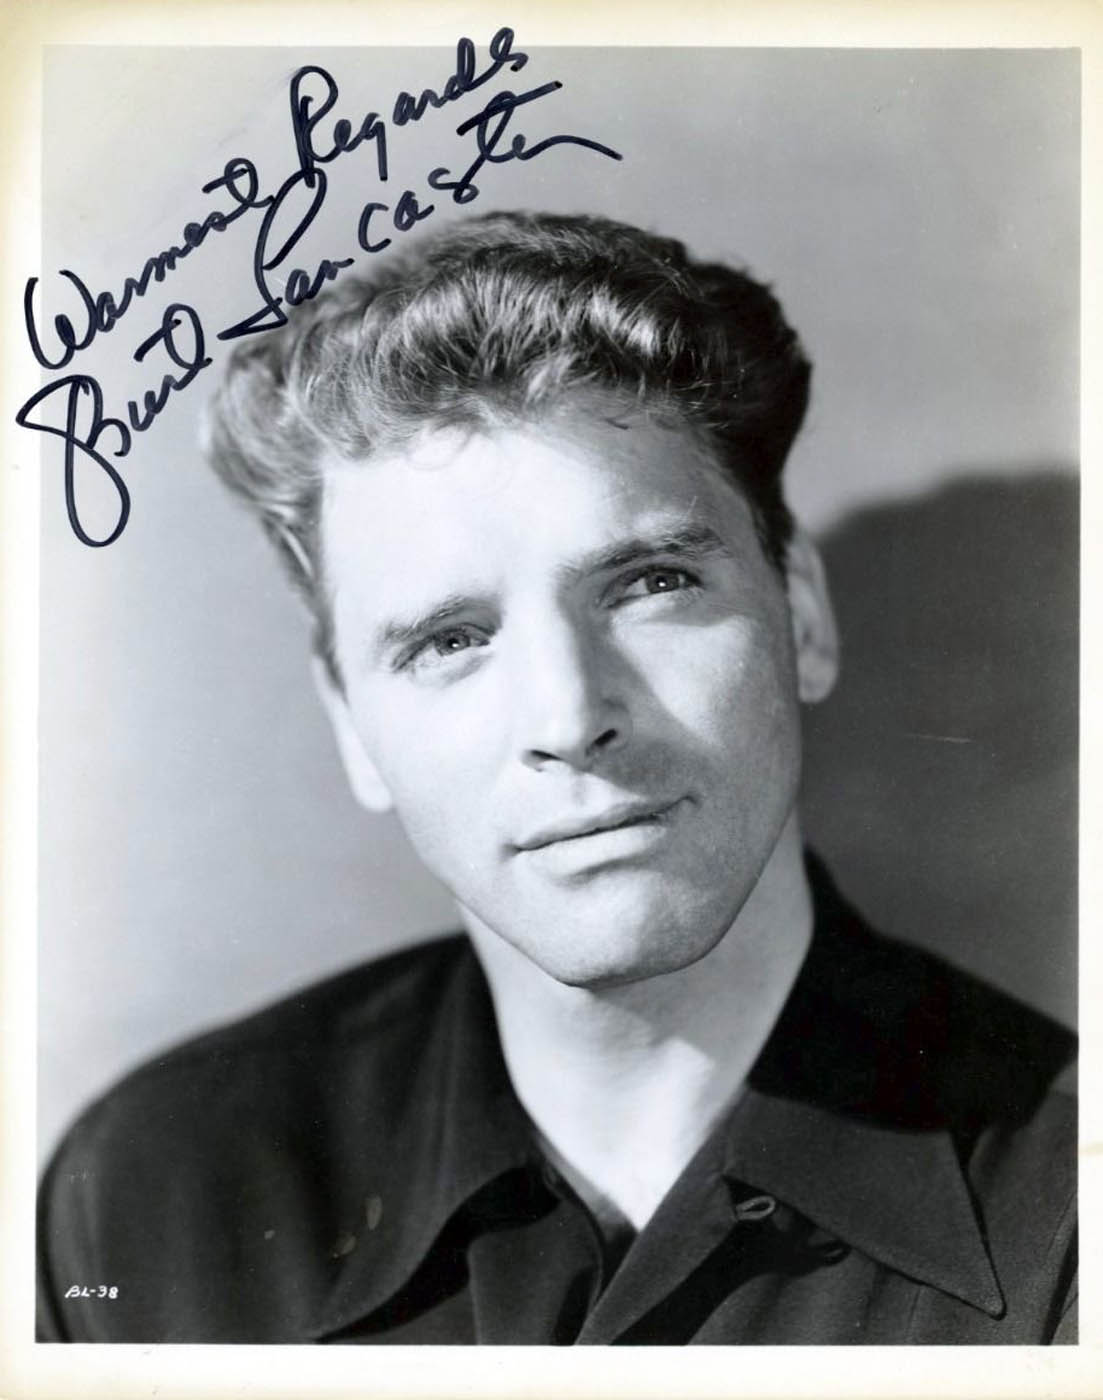 burt lancaster western moviesburt lancaster kirk douglas, burt lancaster films, burt lancaster net worth, burt lancaster unknown war, burt lancaster imdb, burt lancaster filme, burt lancaster movies, burt lancaster swimmer, burt lancaster rotten tomatoes, burt lancaster filmweb, burt lancaster, burt lancaster actor, burt lancaster filmography, burt lancaster height, burt lancaster the train, burt lancaster western movies, burt lancaster trapeze., burt lancaster and deborah kerr, burt lancaster westerns, burt lancaster interview